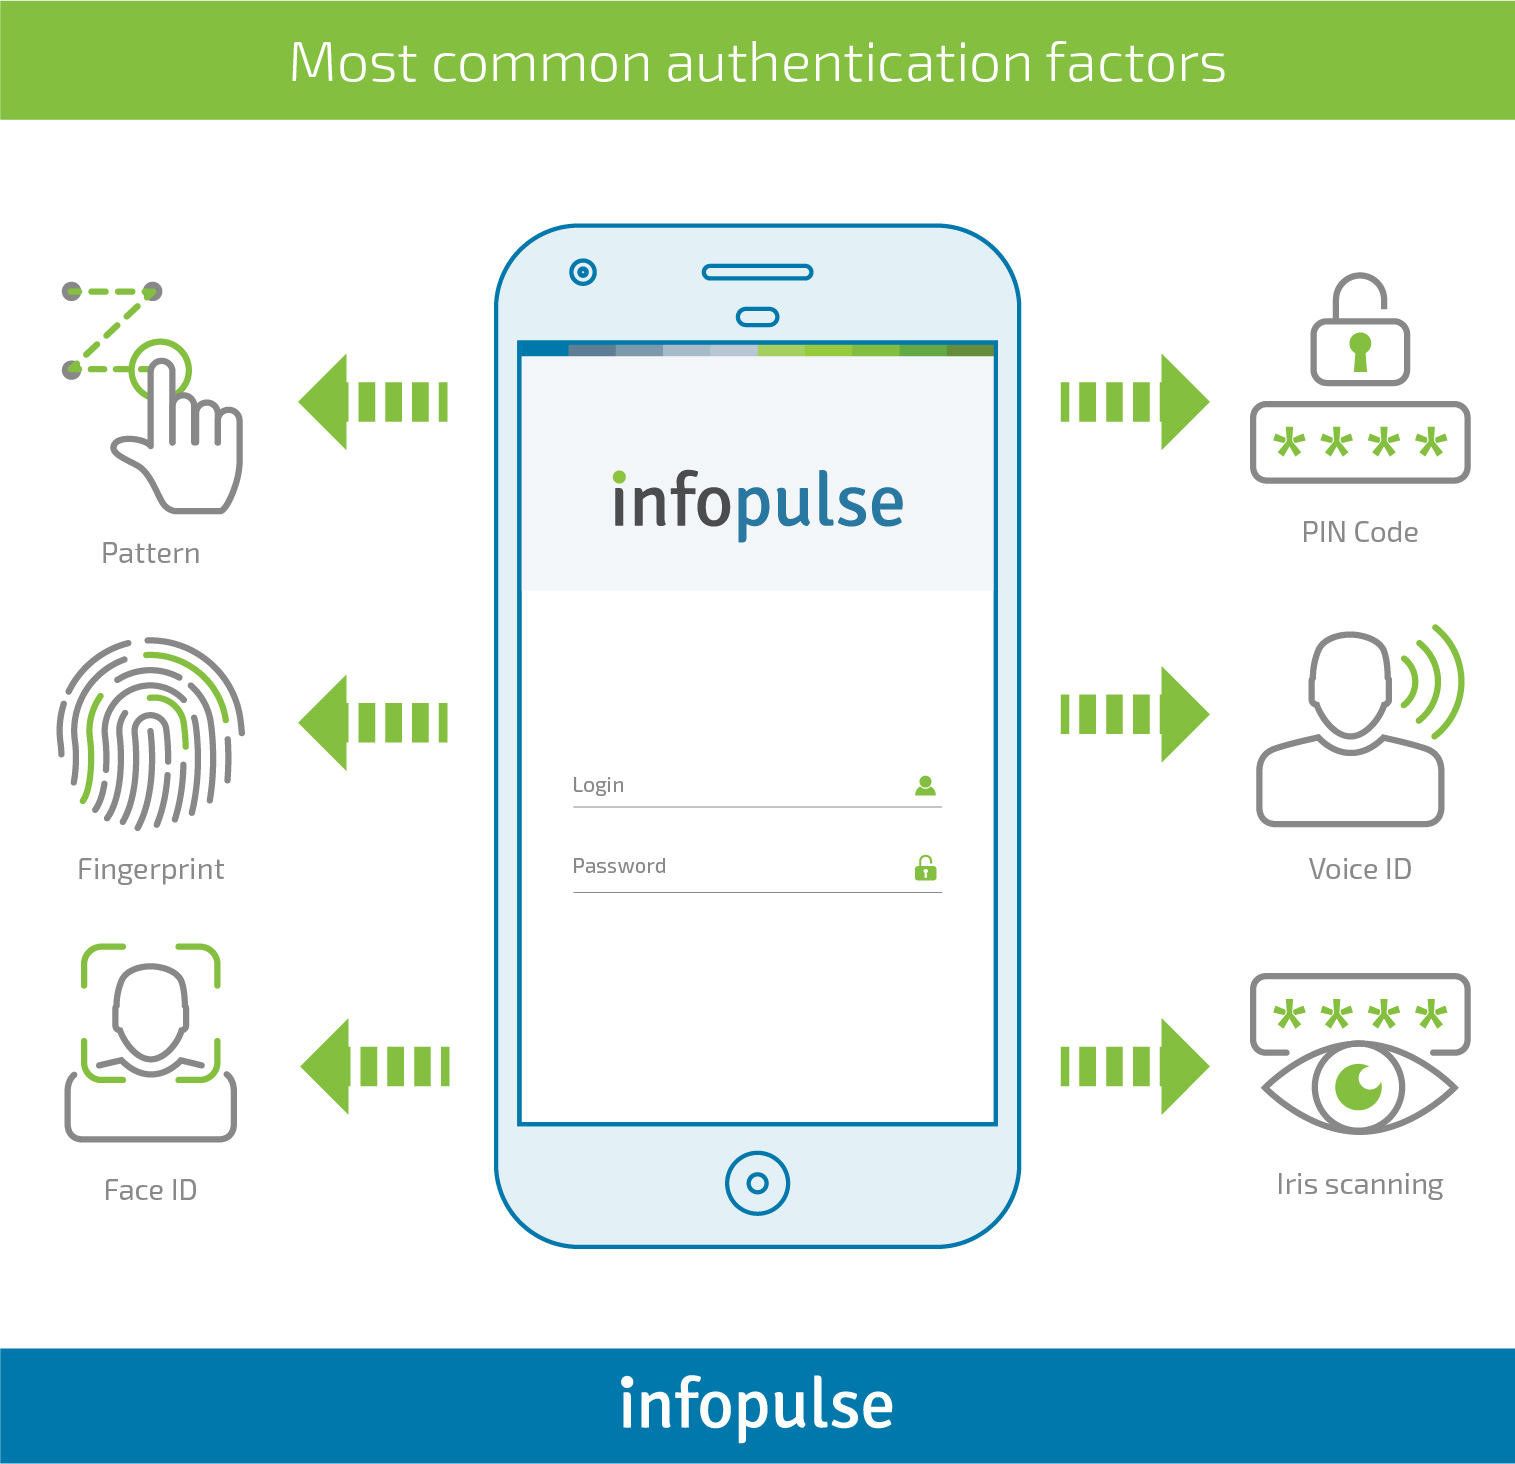 How to Enable Secure Authentication in Mobile Applications - Infopulse - 6